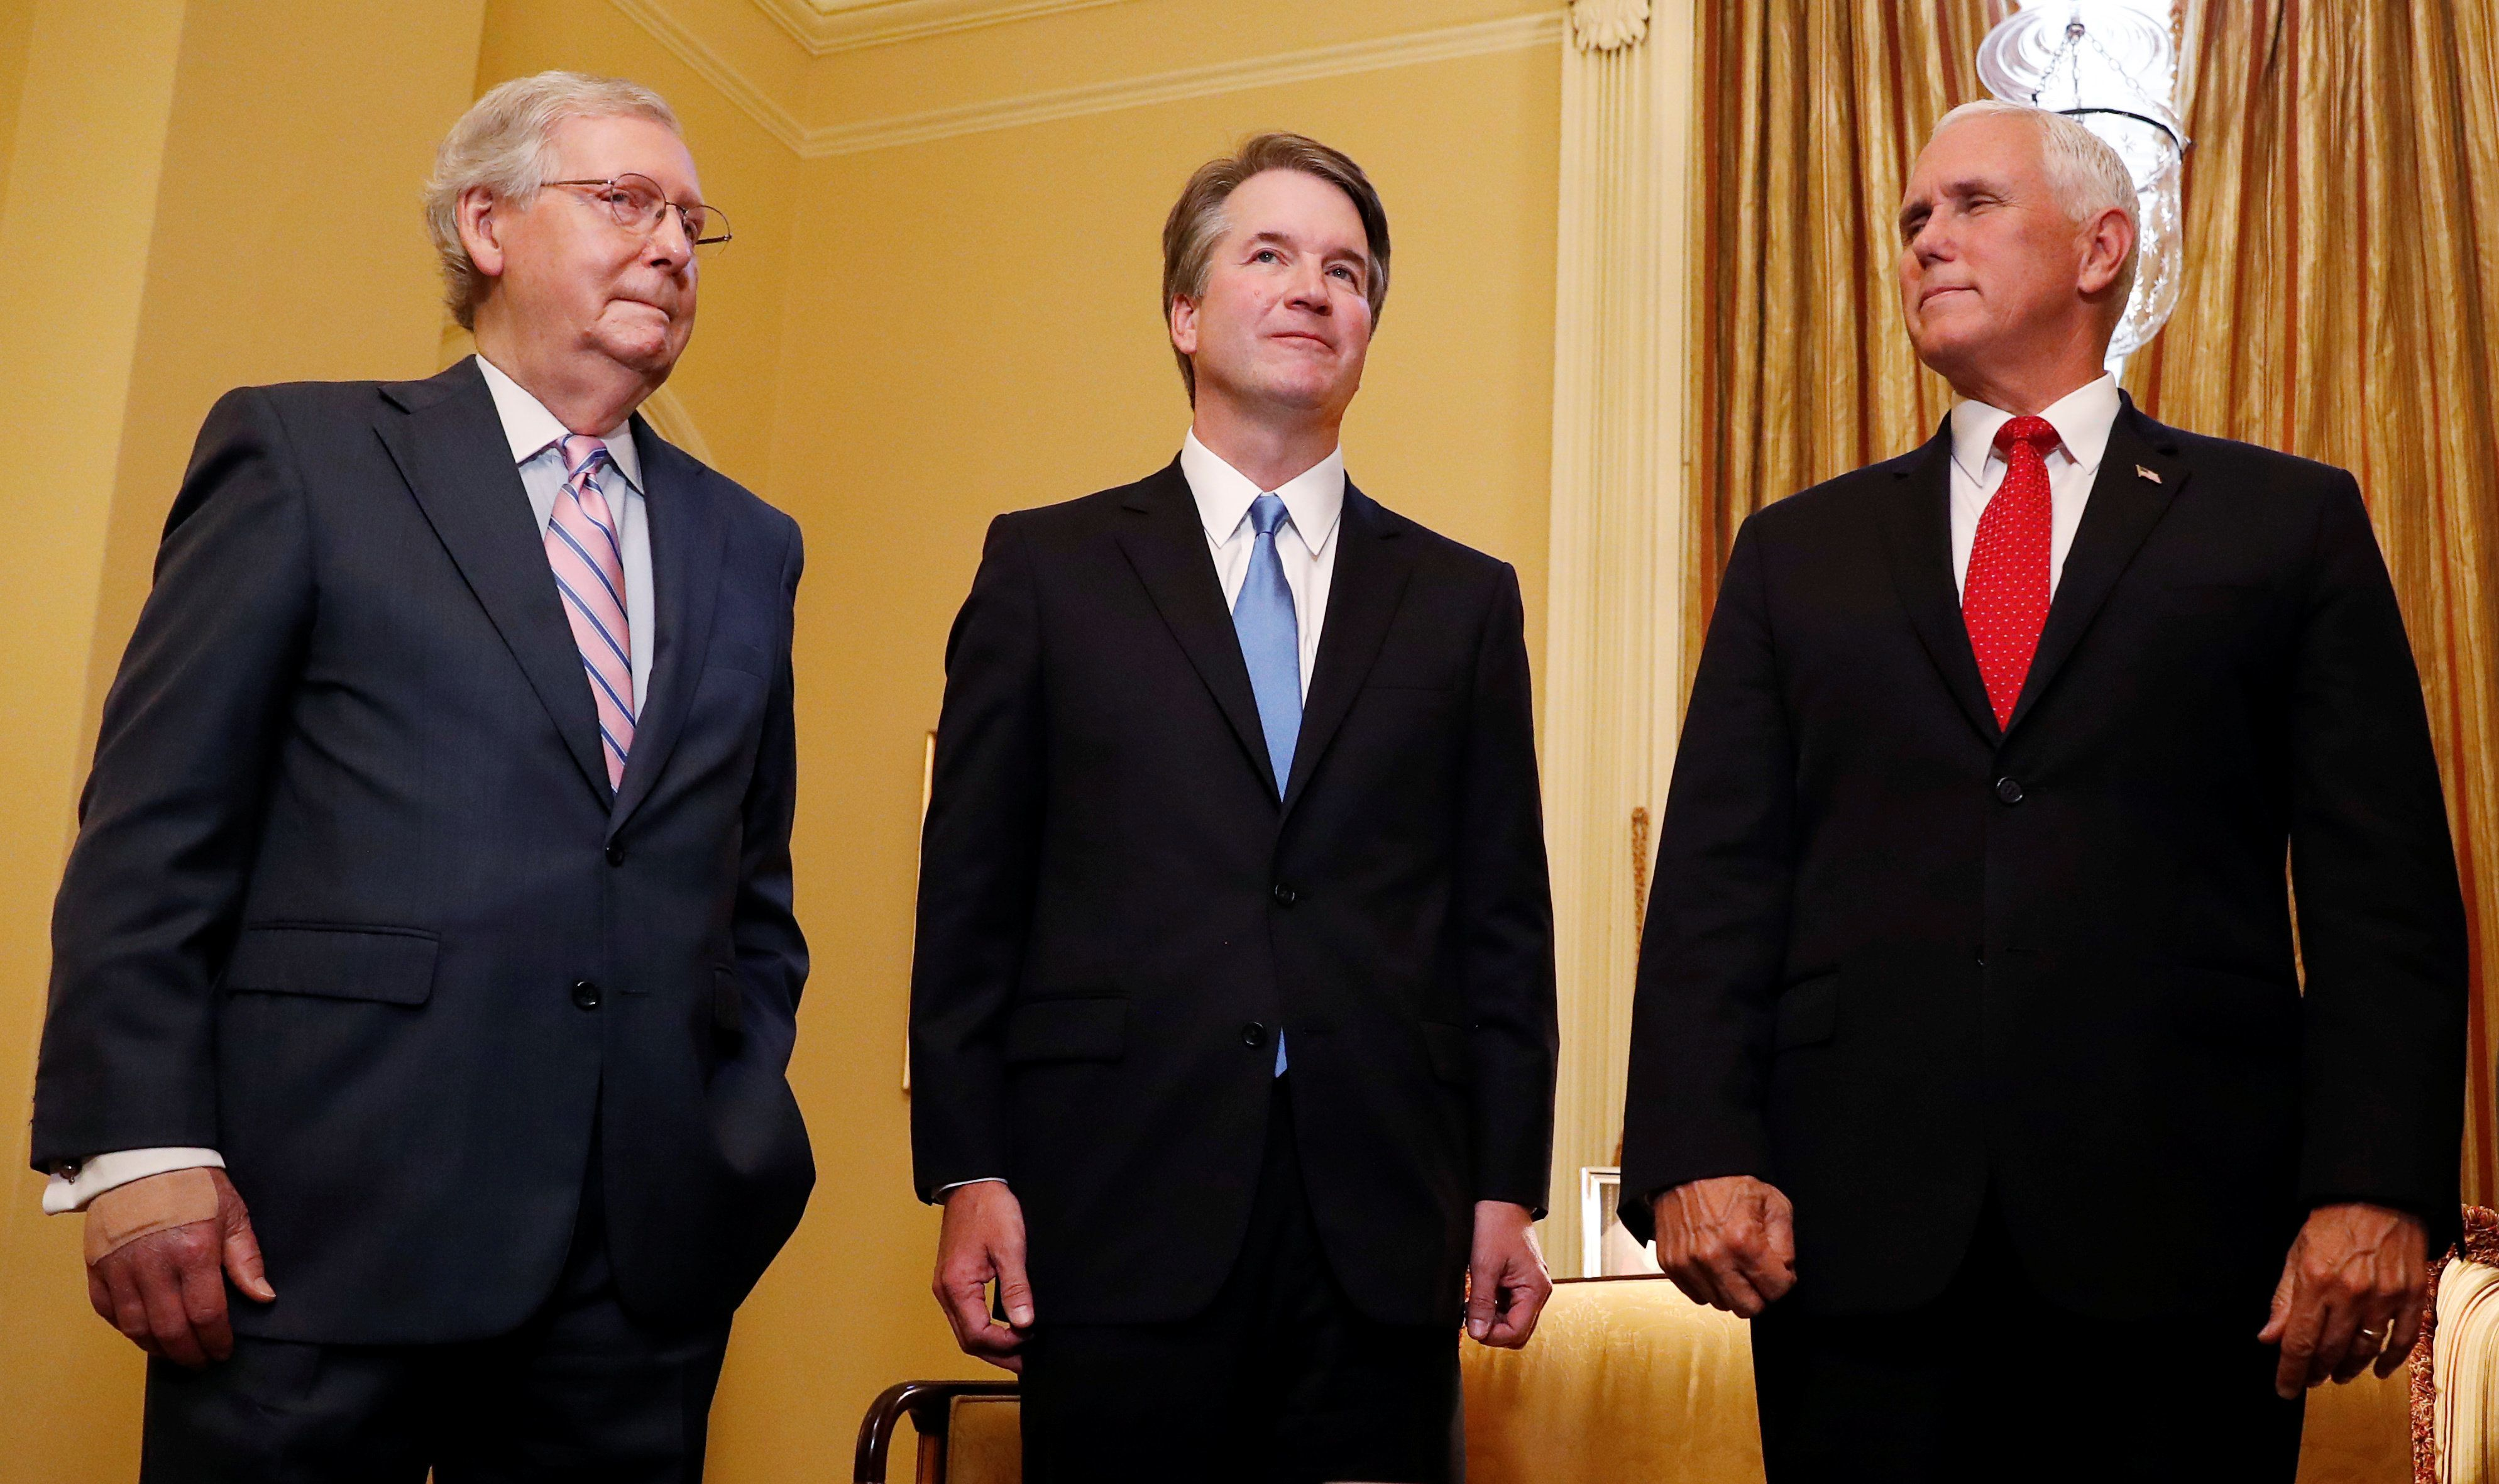 From left to right, Senate Majority Leader Mitch McConnell (R-Ky.), Supreme Court nominee Judge Brett Kavanaugh and Vice